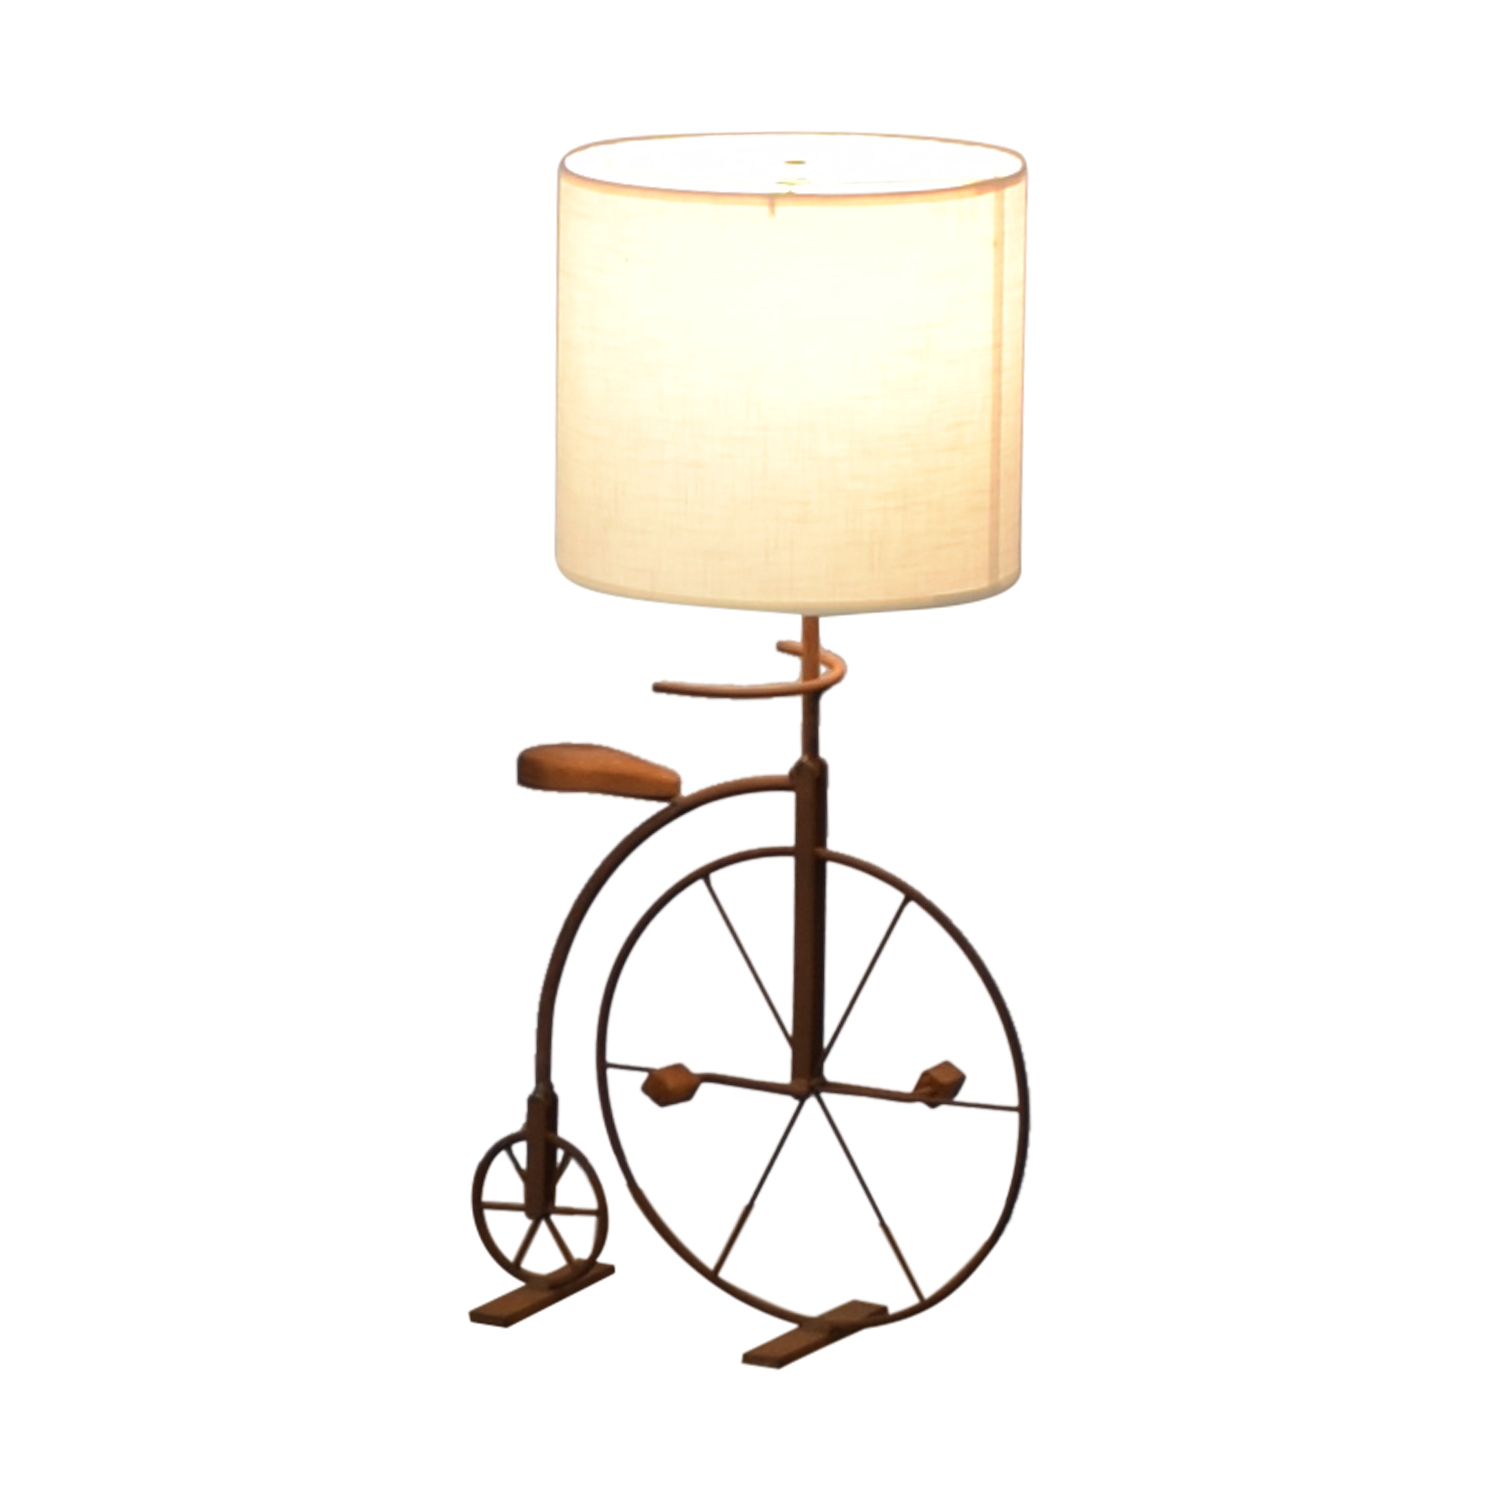 ABC Carpet & Home ABC Carpet & Home Bicycle Lamp for sale